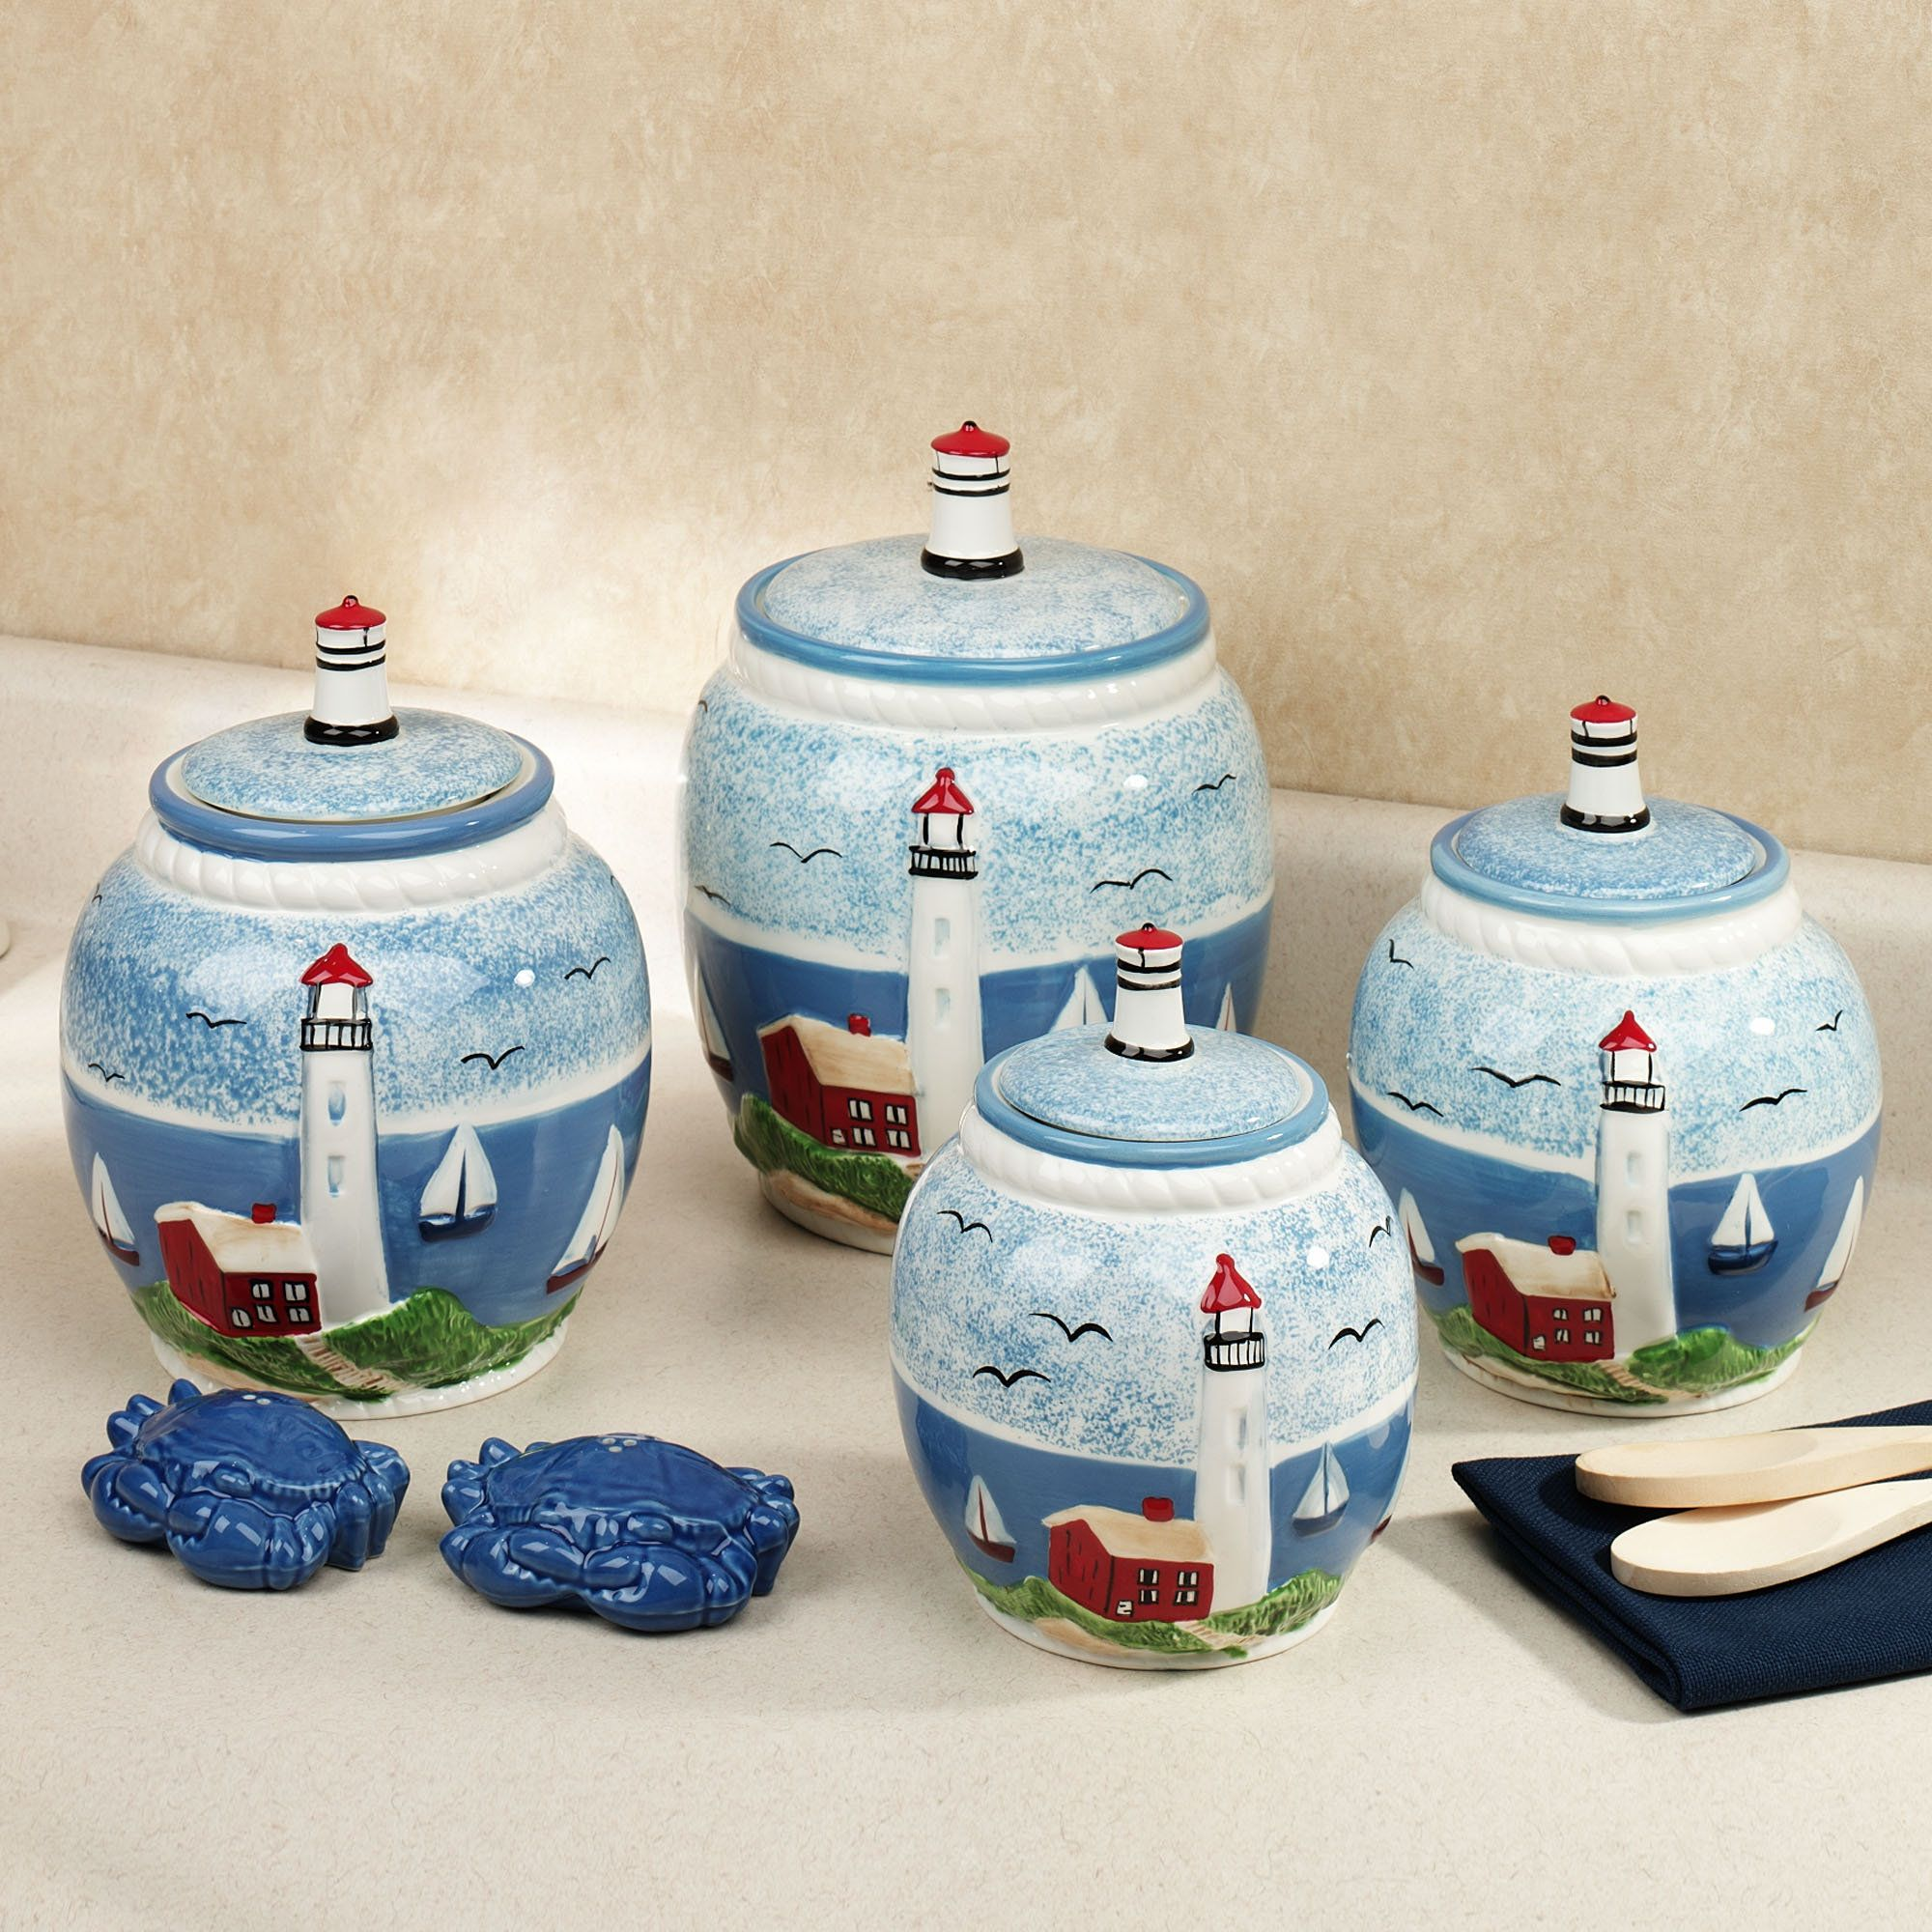 handpainted lighthouse kitchen canister set 89 99 kitchen handpainted lighthouse kitchen canister set 89 99